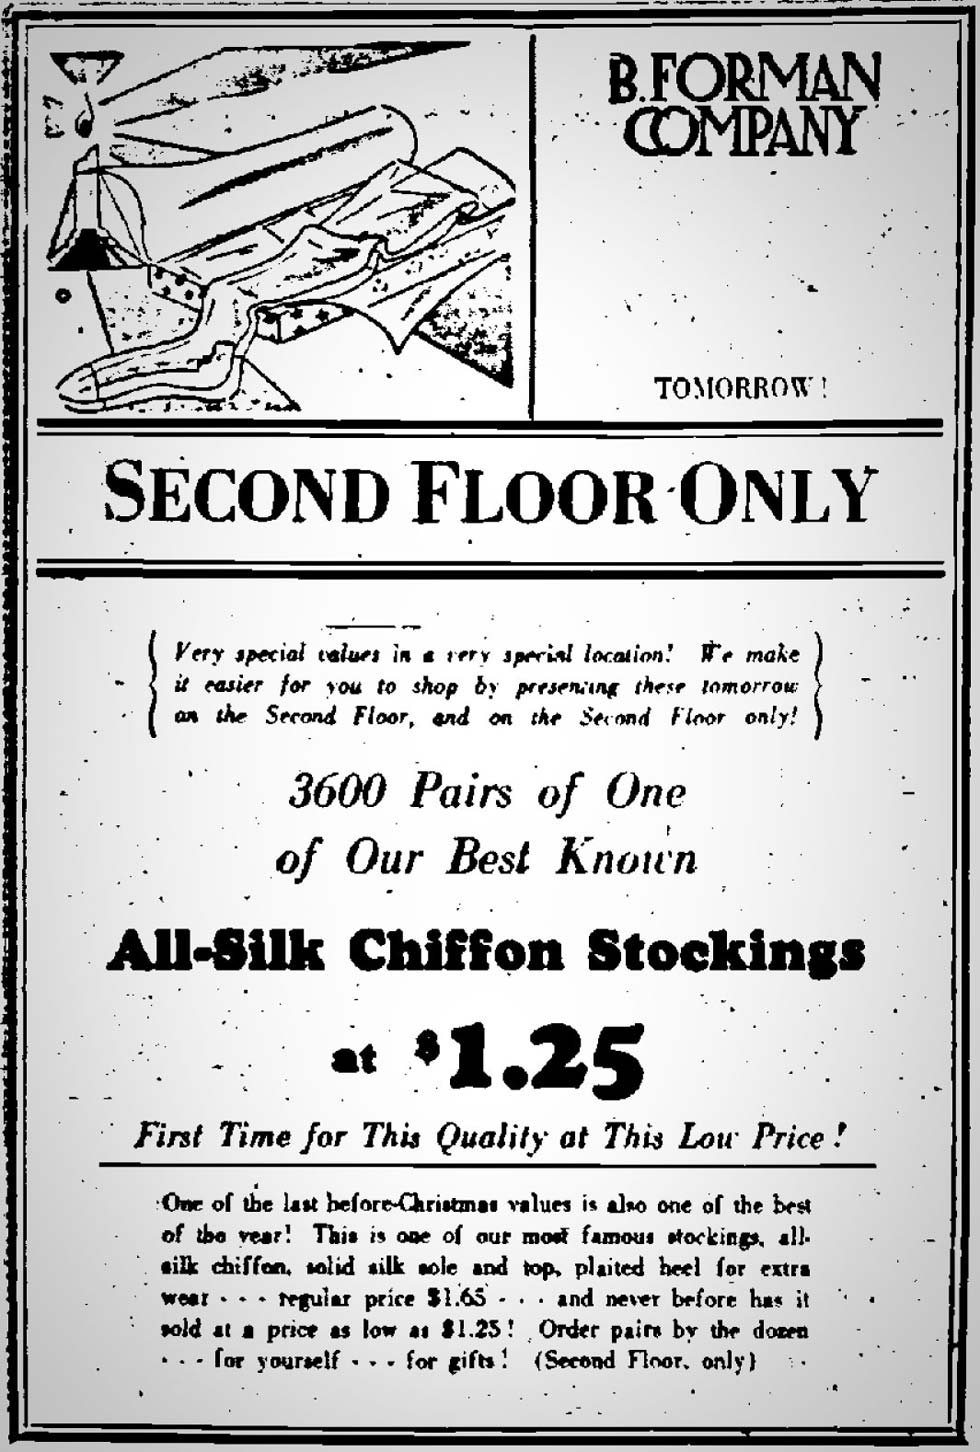 B. Forman Co. advertisment in the Democrat and Chronicle, December 22, 1929. [SOURCE: FultonHistory.com]